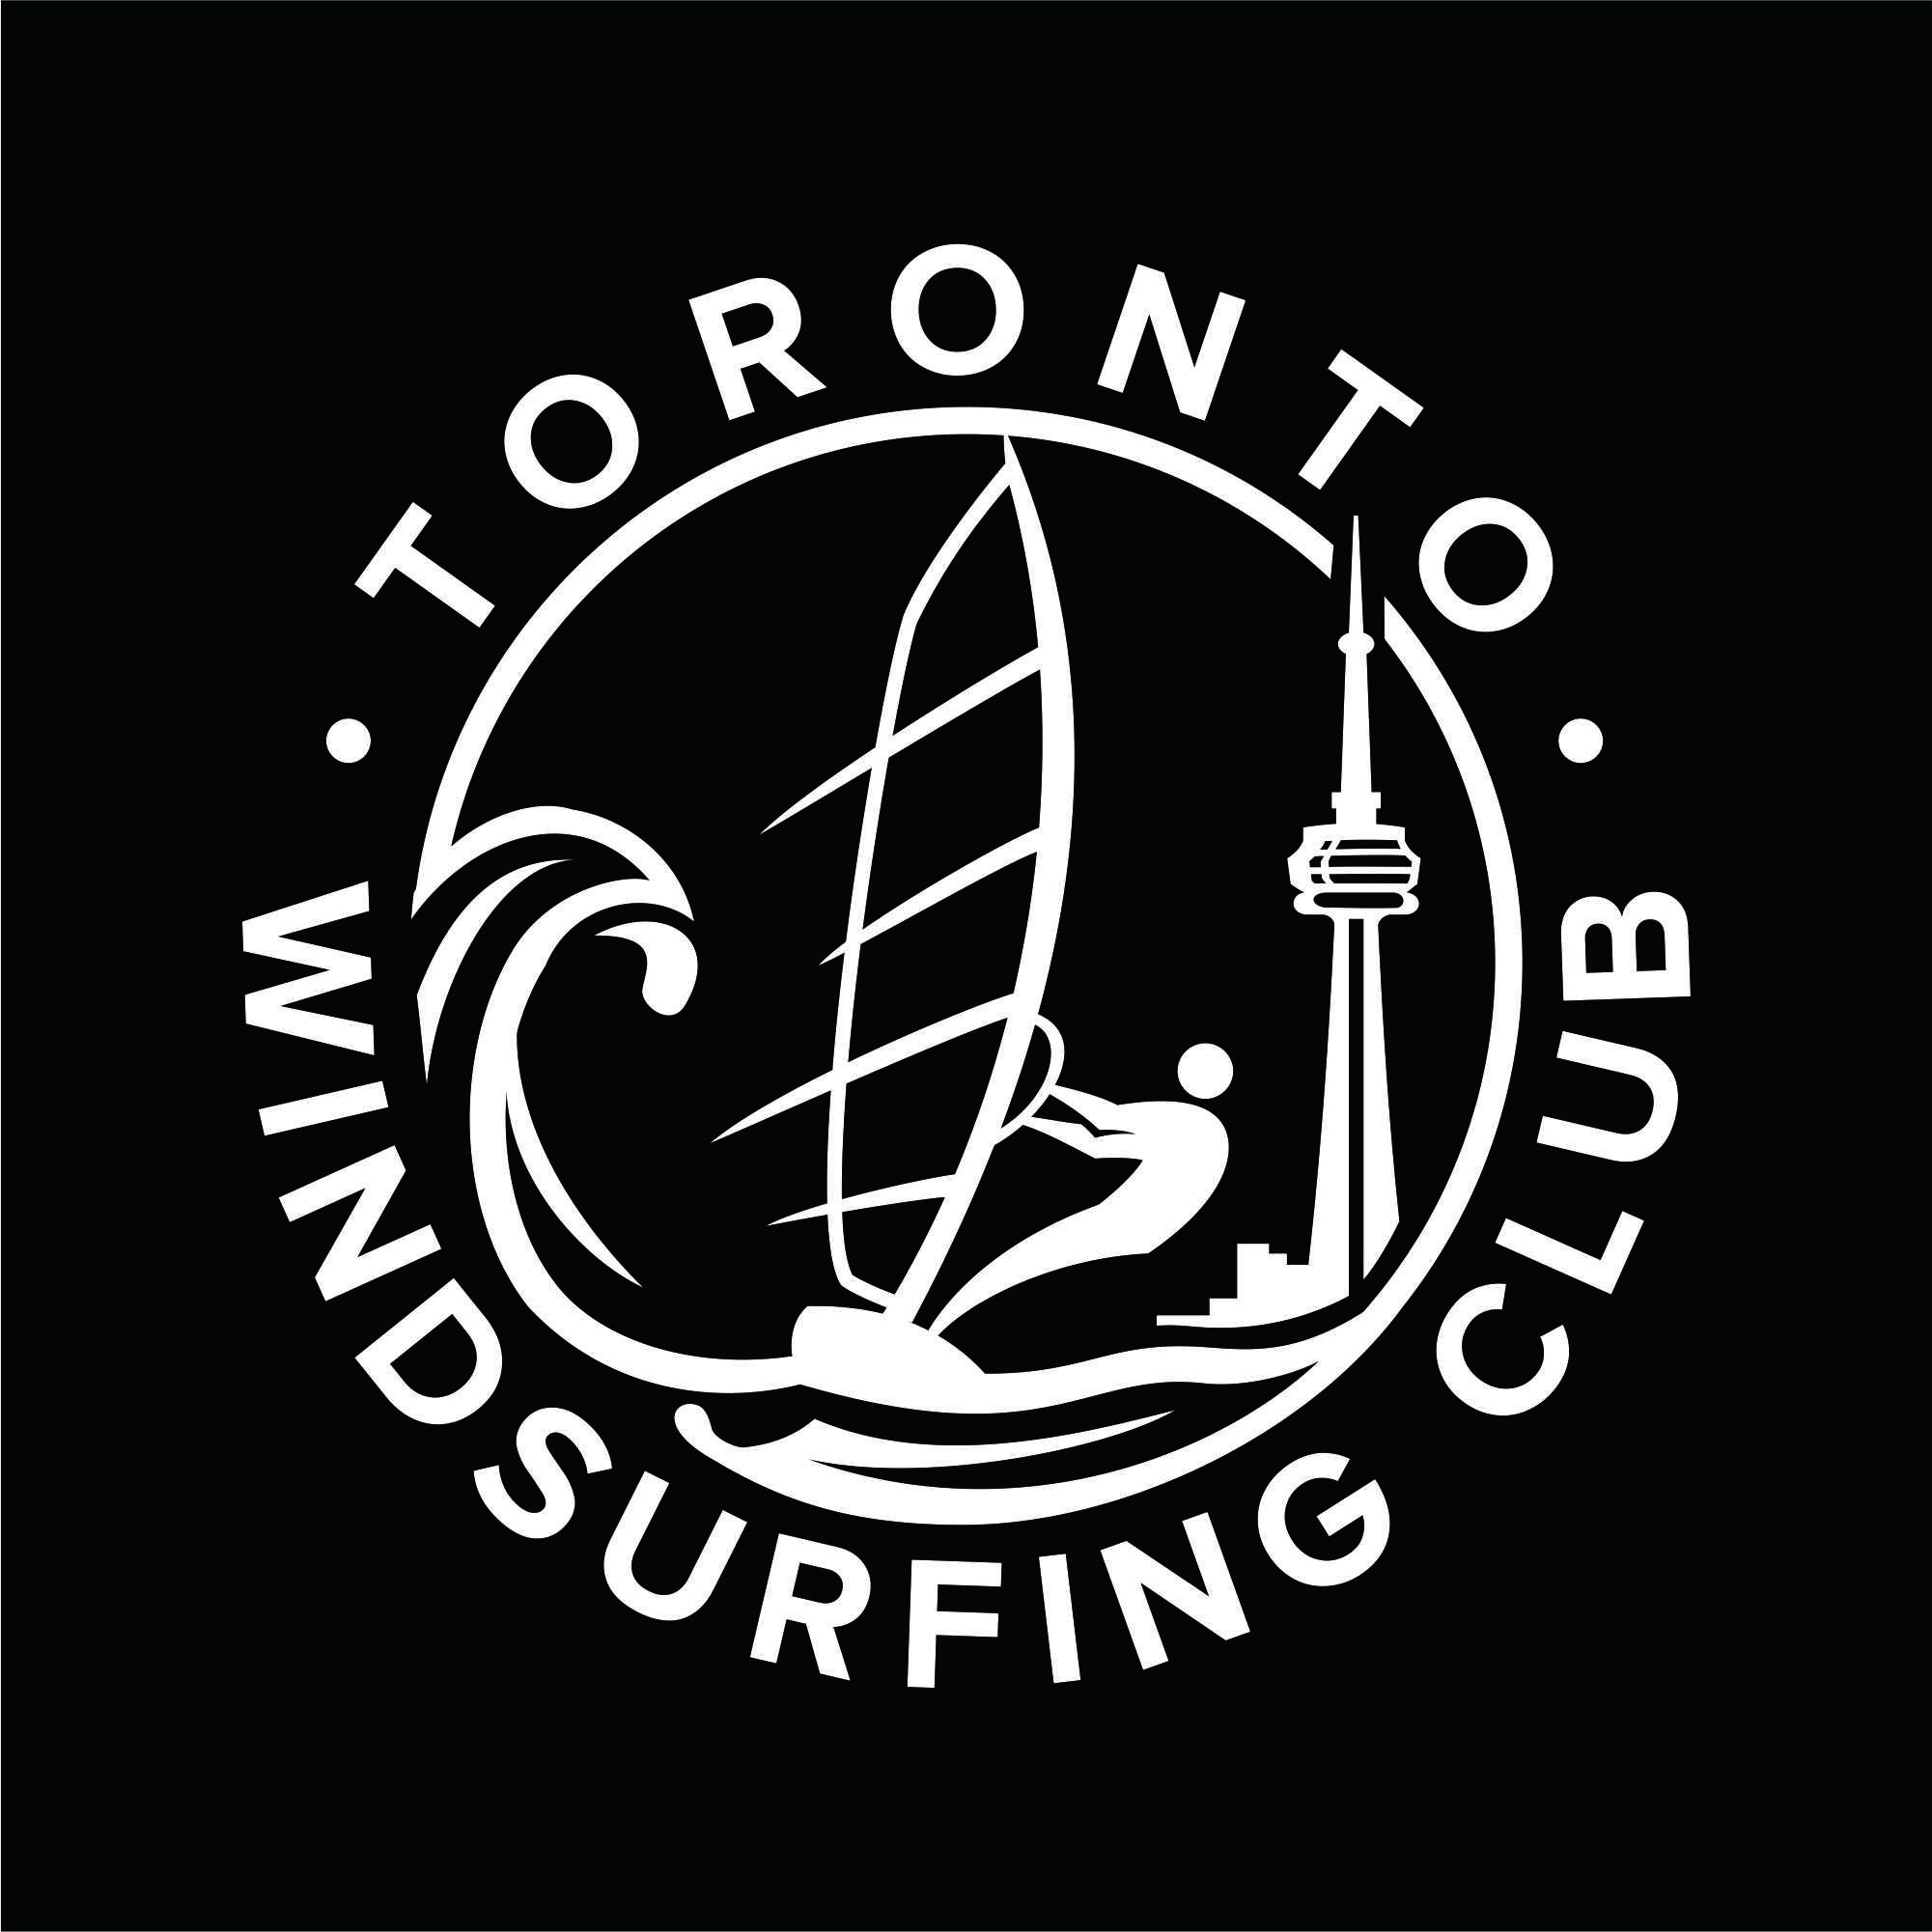 Exciting new logo needed for Toronto Windsurfing